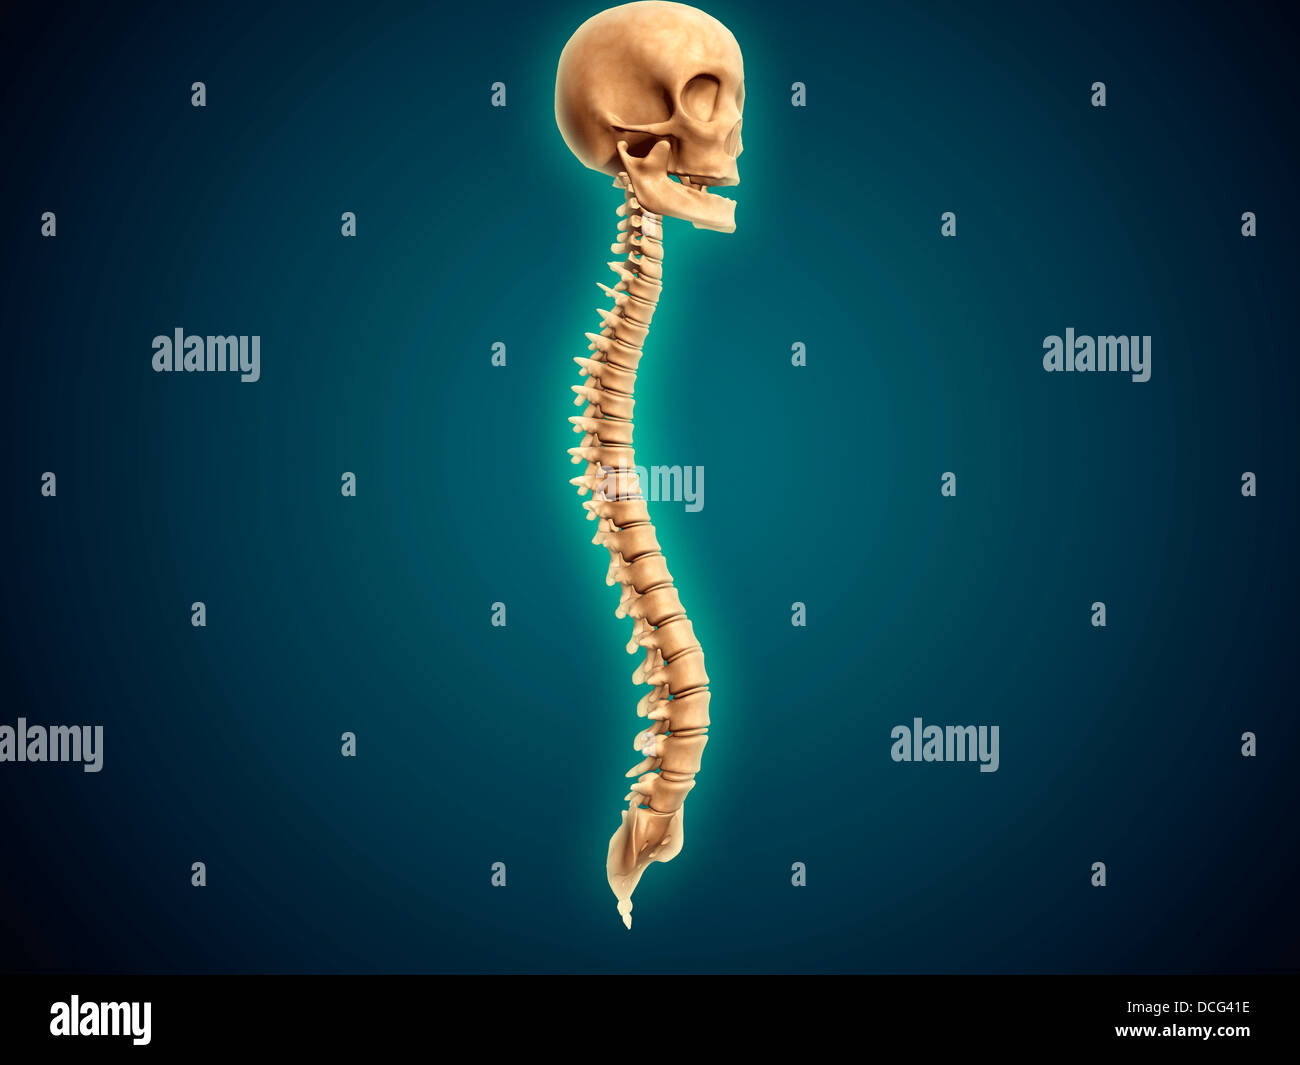 Conceptual image of human skull and spinal cord. - Stock Image